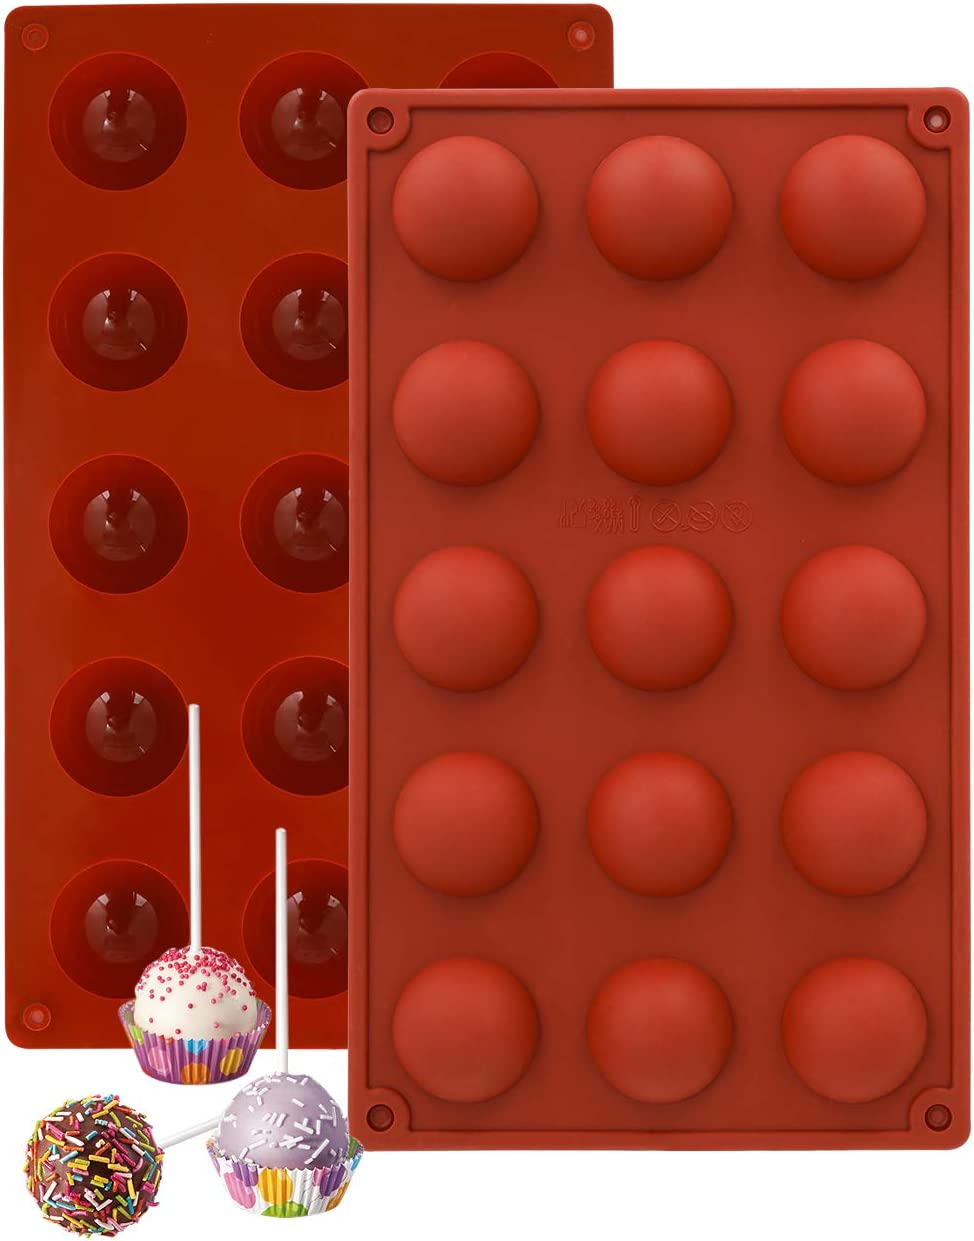 Tingoo Hot Chocolate Bomb Silicone Semi Sphere Molds, Non Stick, Food-Grade Round Silicone Mold for Chocolate, Cake, Jelly, Pudding,Baking Supplies 15 Holes(2pcs)